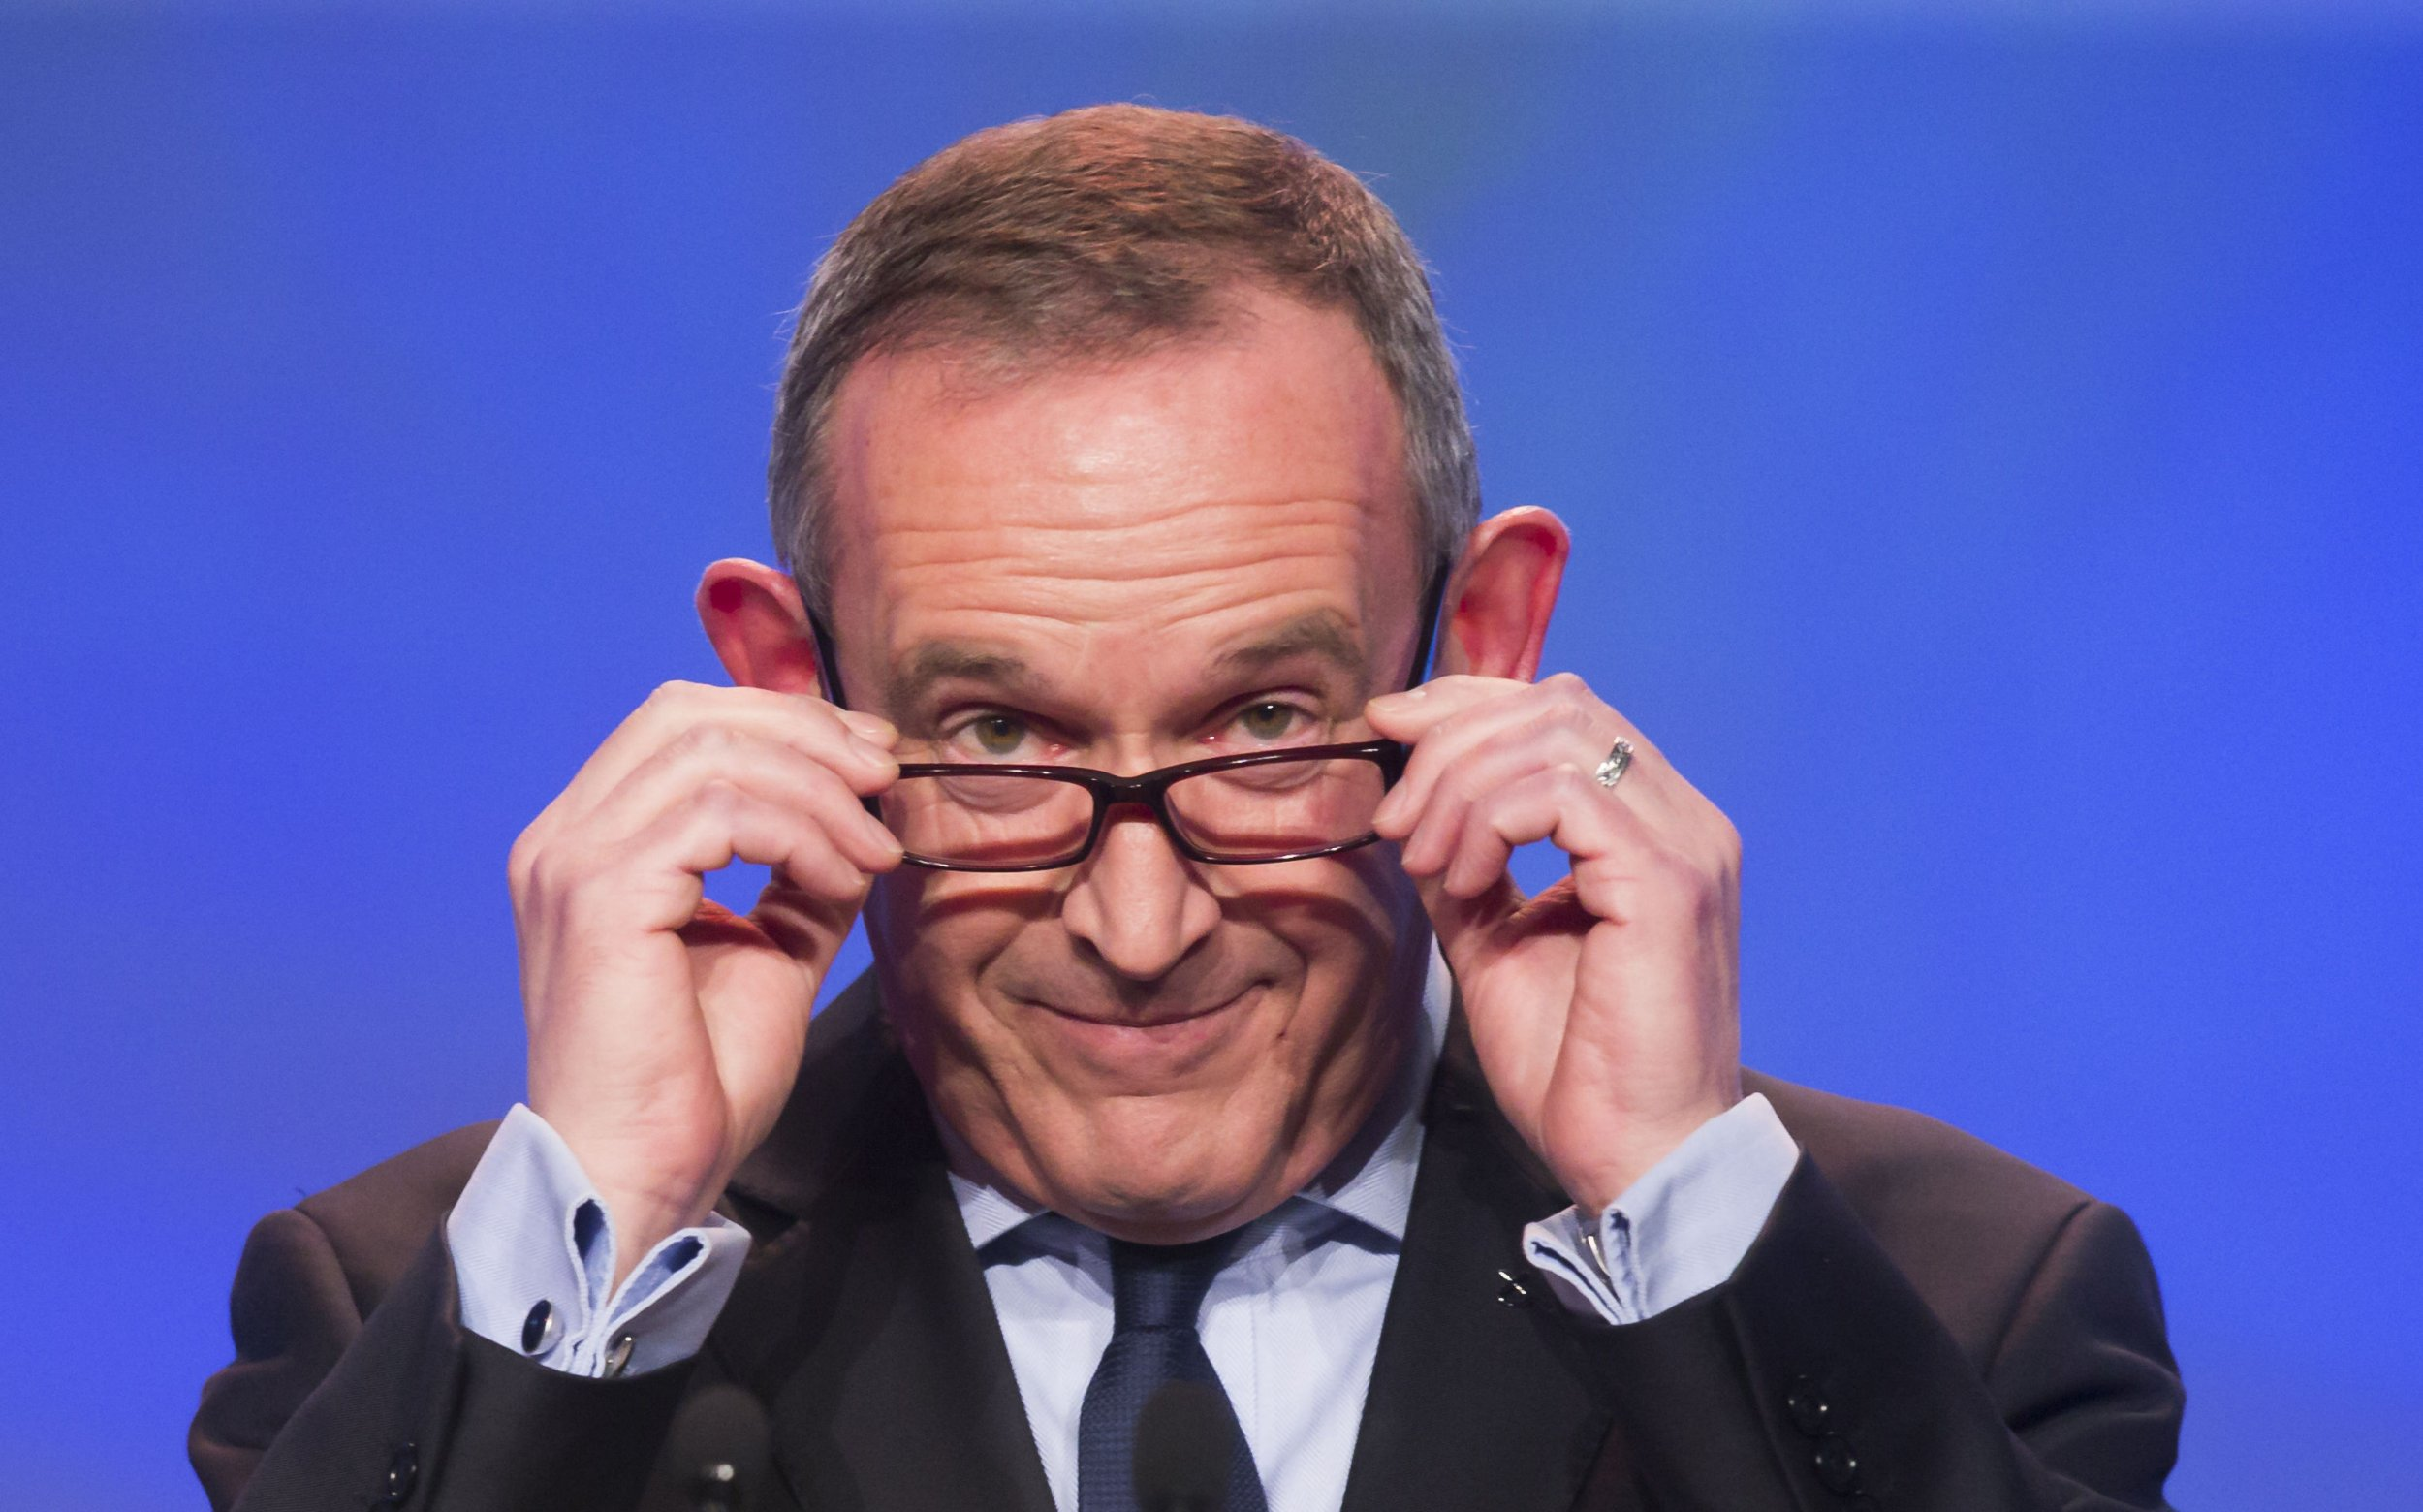 """File photo dated 29/03/15 of SNP deputy leader Stewart Hosie, as the MP at the centre of love triangle allegations has announced he is quitting as deputy leader of the Scottish National Party. PRESS ASSOCIATION Photo. Issue date: Sunday May 22, 2016. Stewart Hosie said he wanted to """"apologise for any hurt and upset"""" he has caused and will step back from the role to concentrate on his constituency, responsibilities at Westminster and his health. See PA story POLITICS SNP. Photo credit should read: Danny Lawson/PA Wire"""